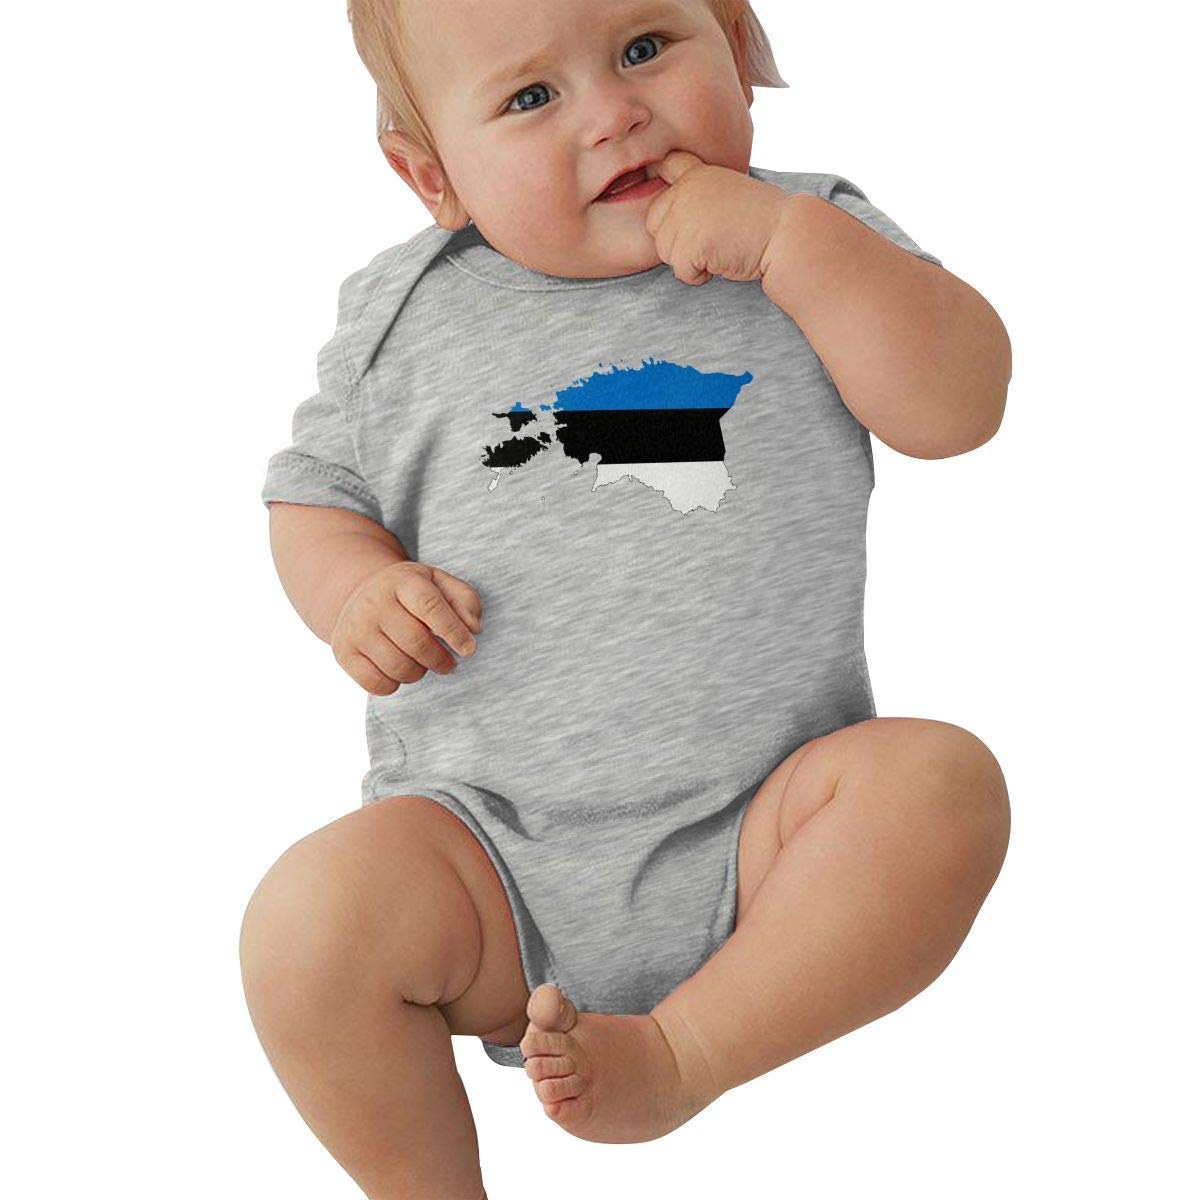 JJKKFG-H Flag Map of Estonia Printed Summer Baby Infant Girls /& Oys Short Sleeve Playsuit Outfit Clothes Shirt